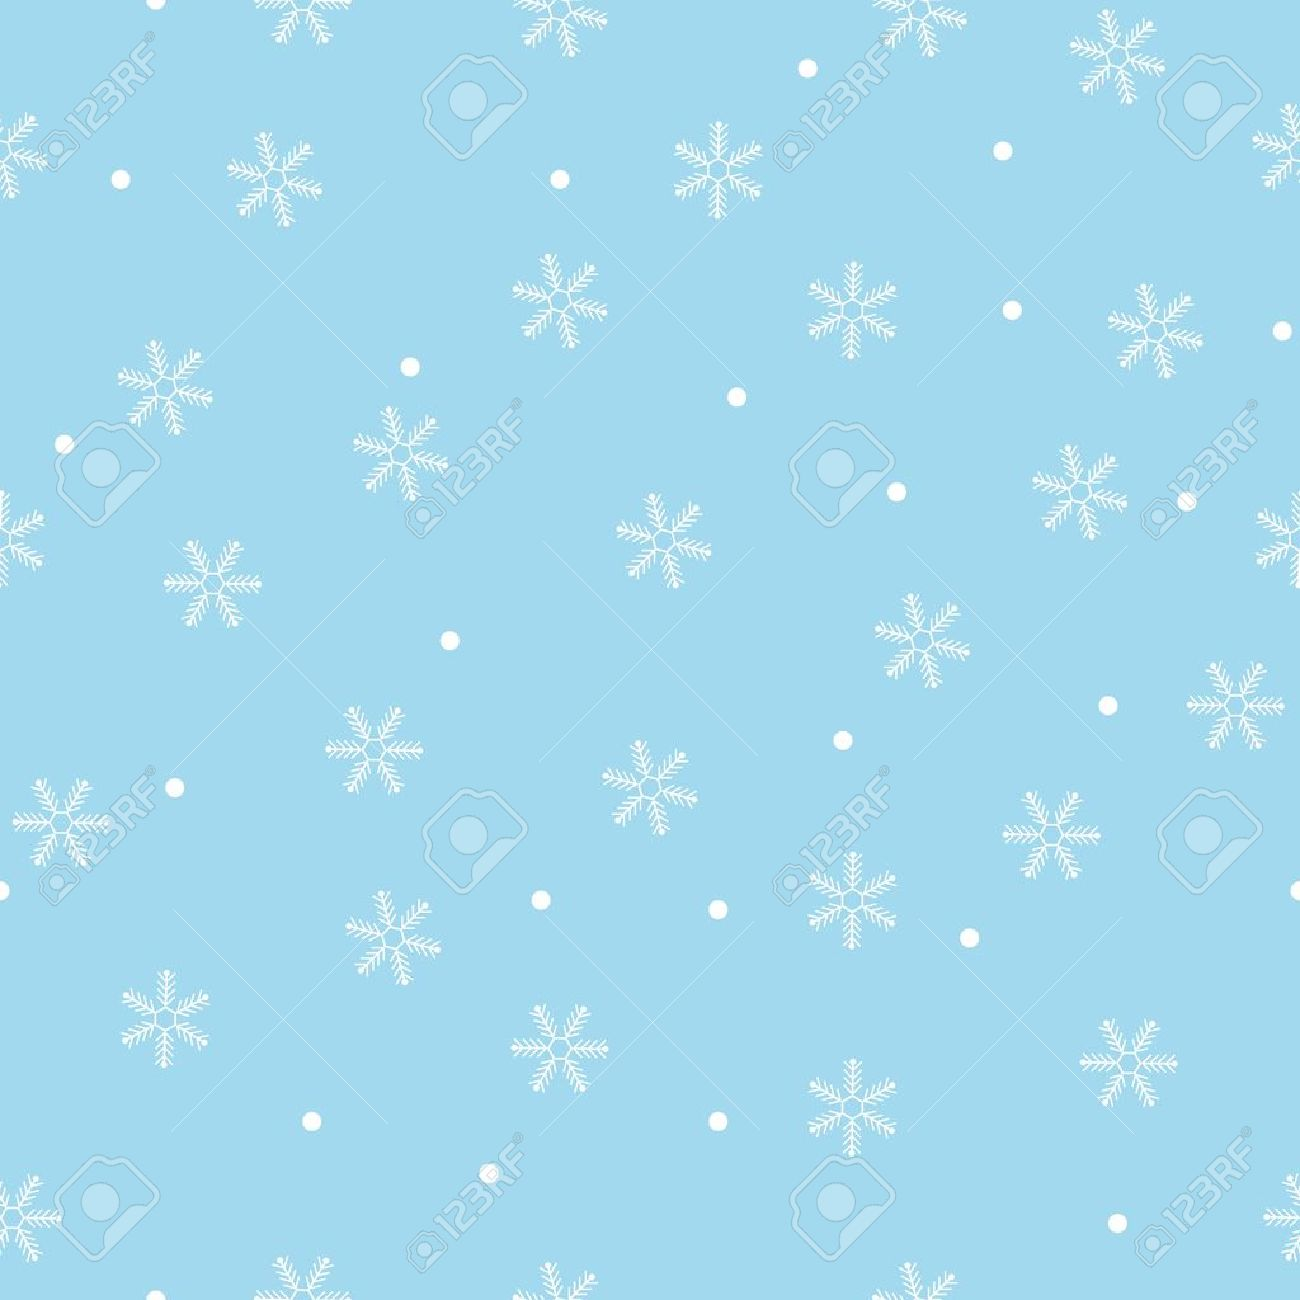 Seamless snowflake pattern blue background,vector Stock Vector - 15705863